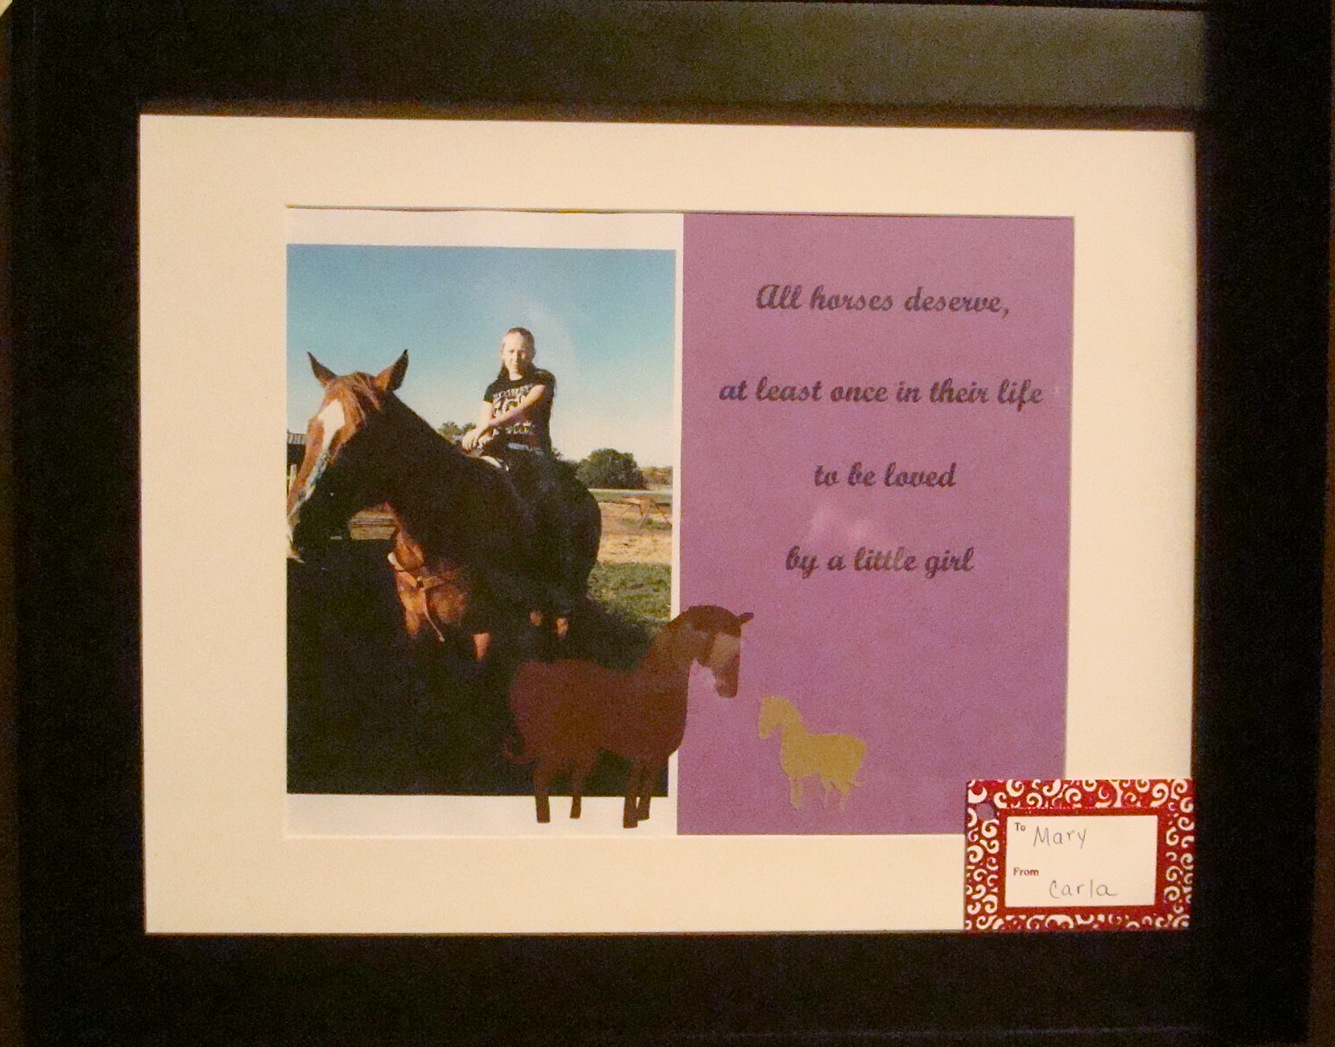 12-25-12-mary-more-rides-helps-loves-horses